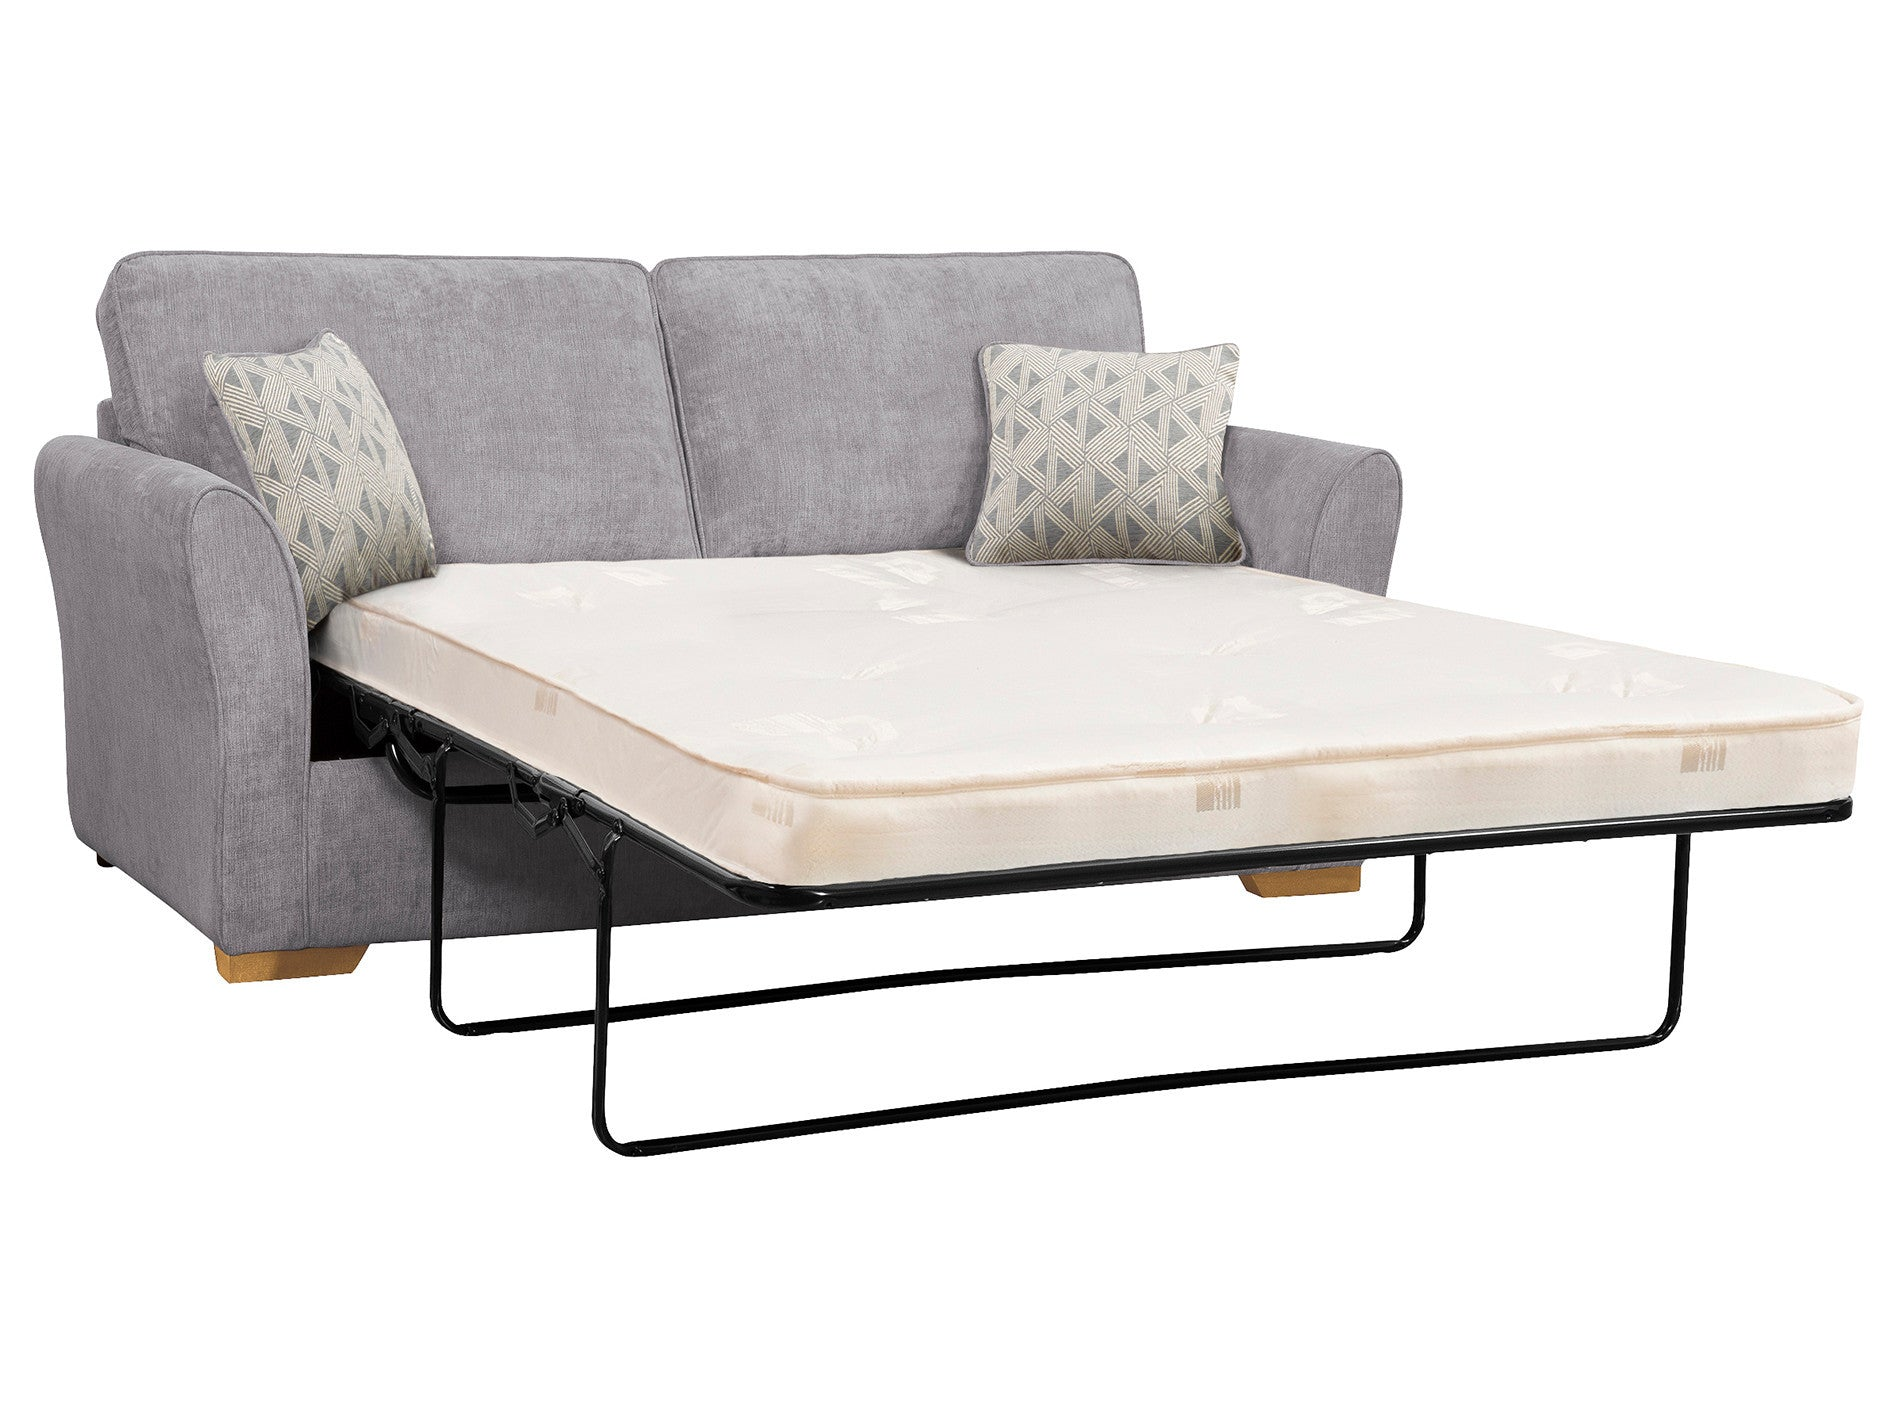 Sofa beds with sprung mattress - Jasmine Large Sofa Bed With Deluxe Mattress In Cosmo Pewter With Bamboo Slate Scatters